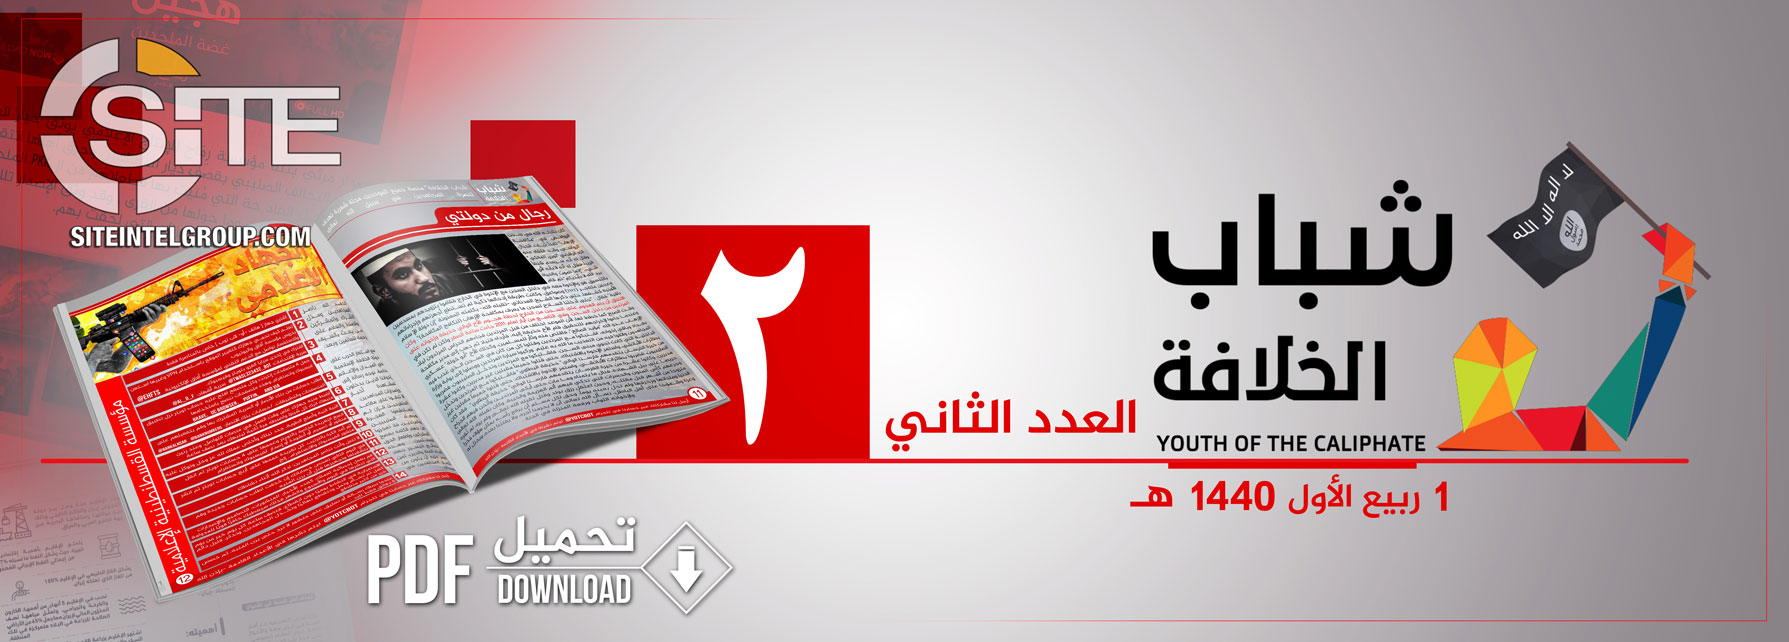 youthcaliphatemag2